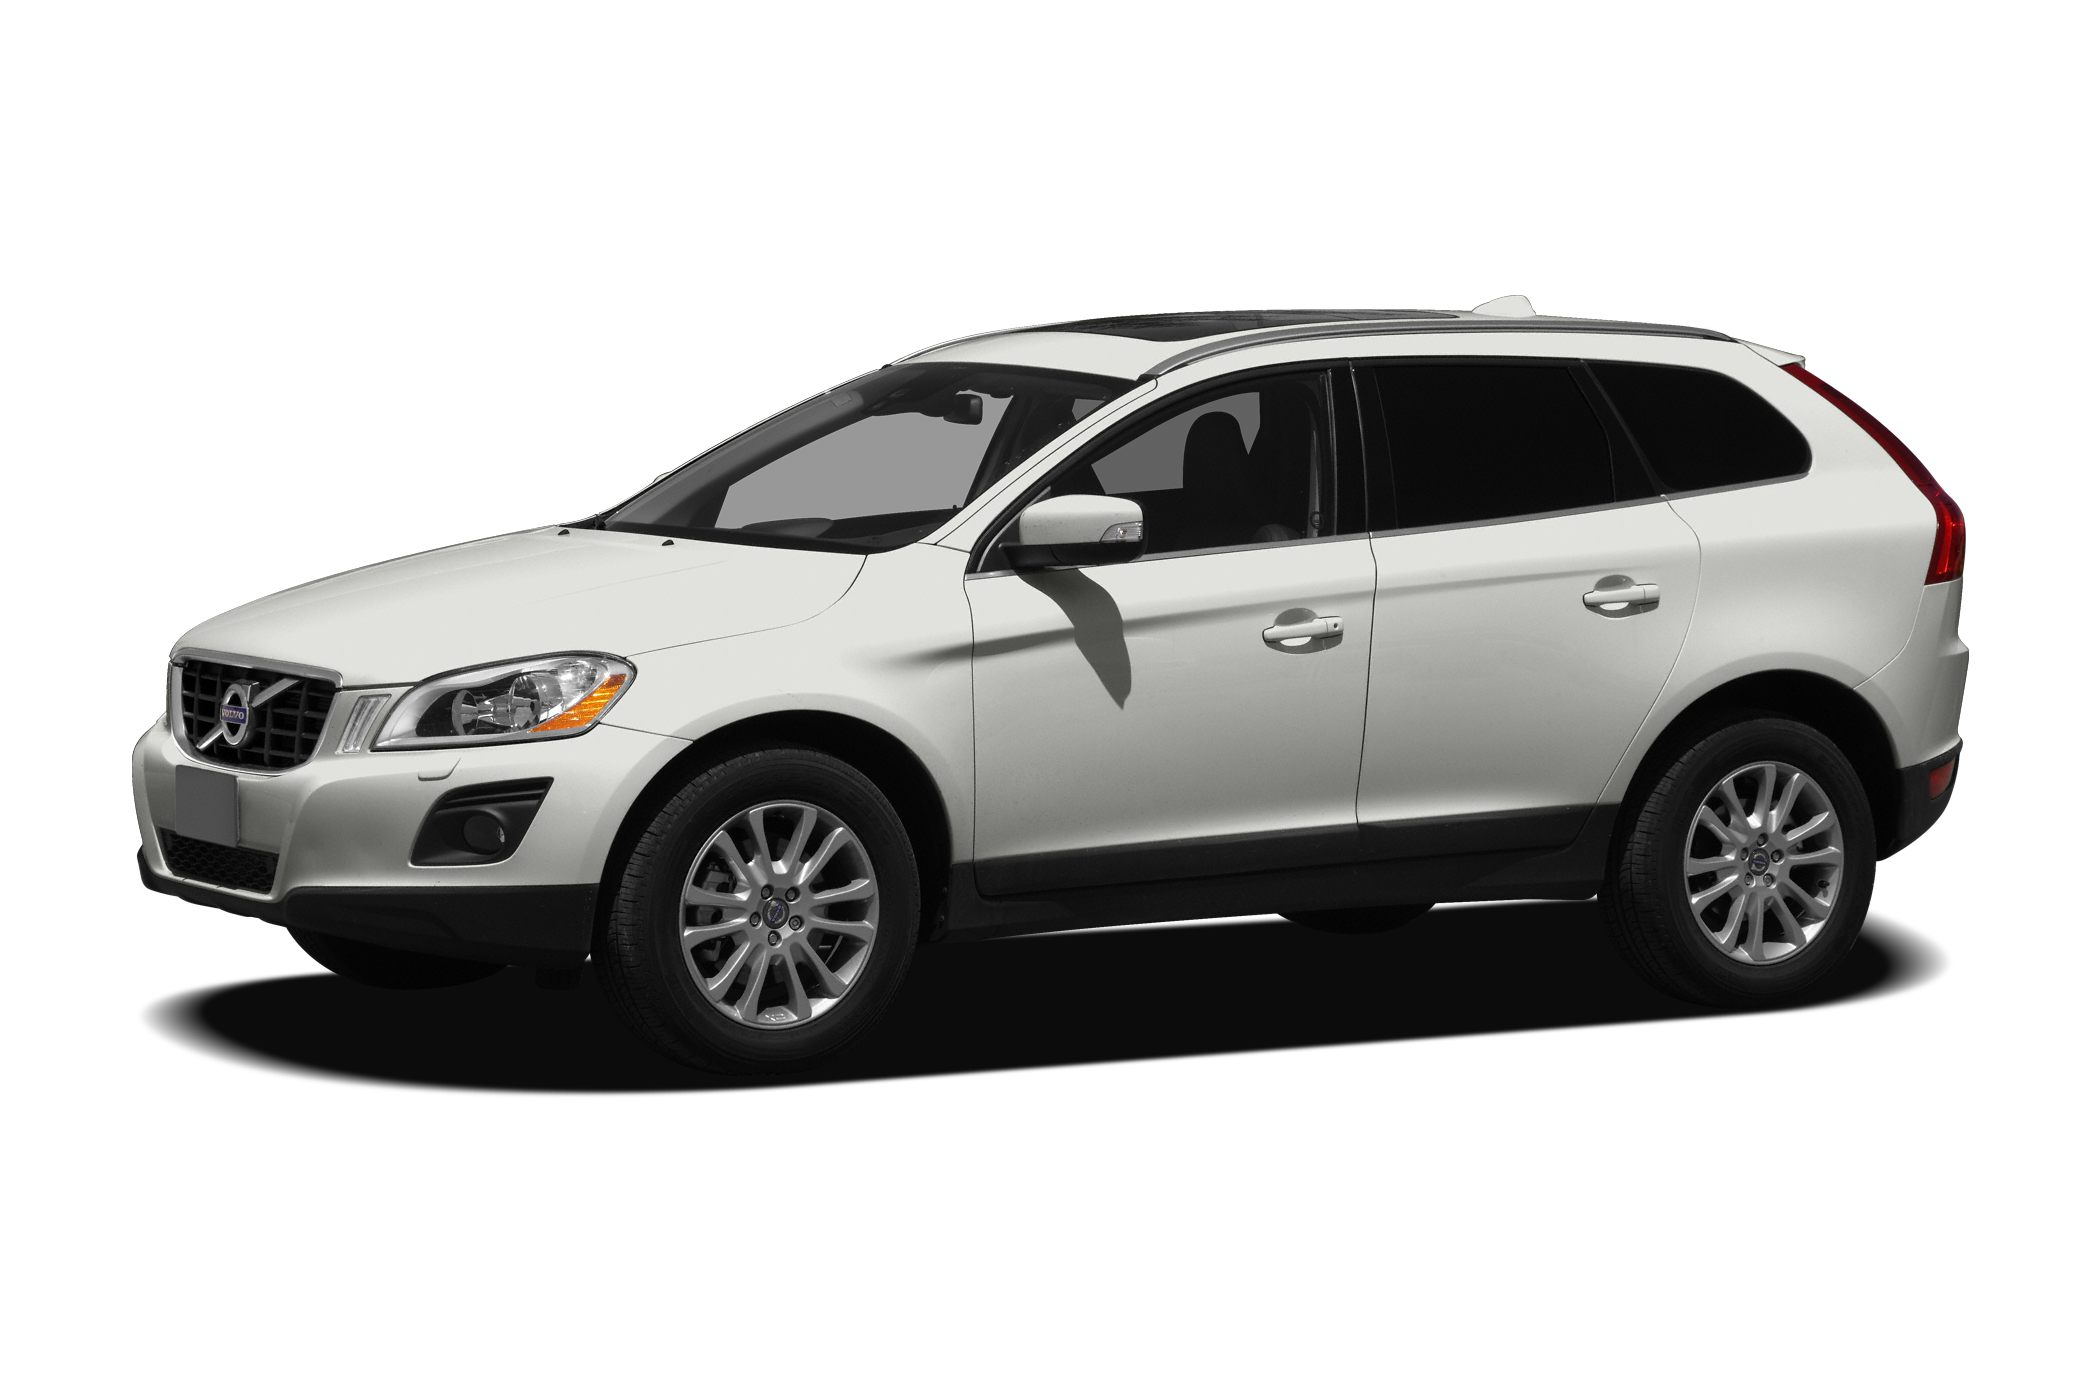 2010 Volvo XC60 T6  WHEN IT COMES TOEXCELLENCE IN USED CAR SALES YOU KNOW YOURE AT STAR AUTO M